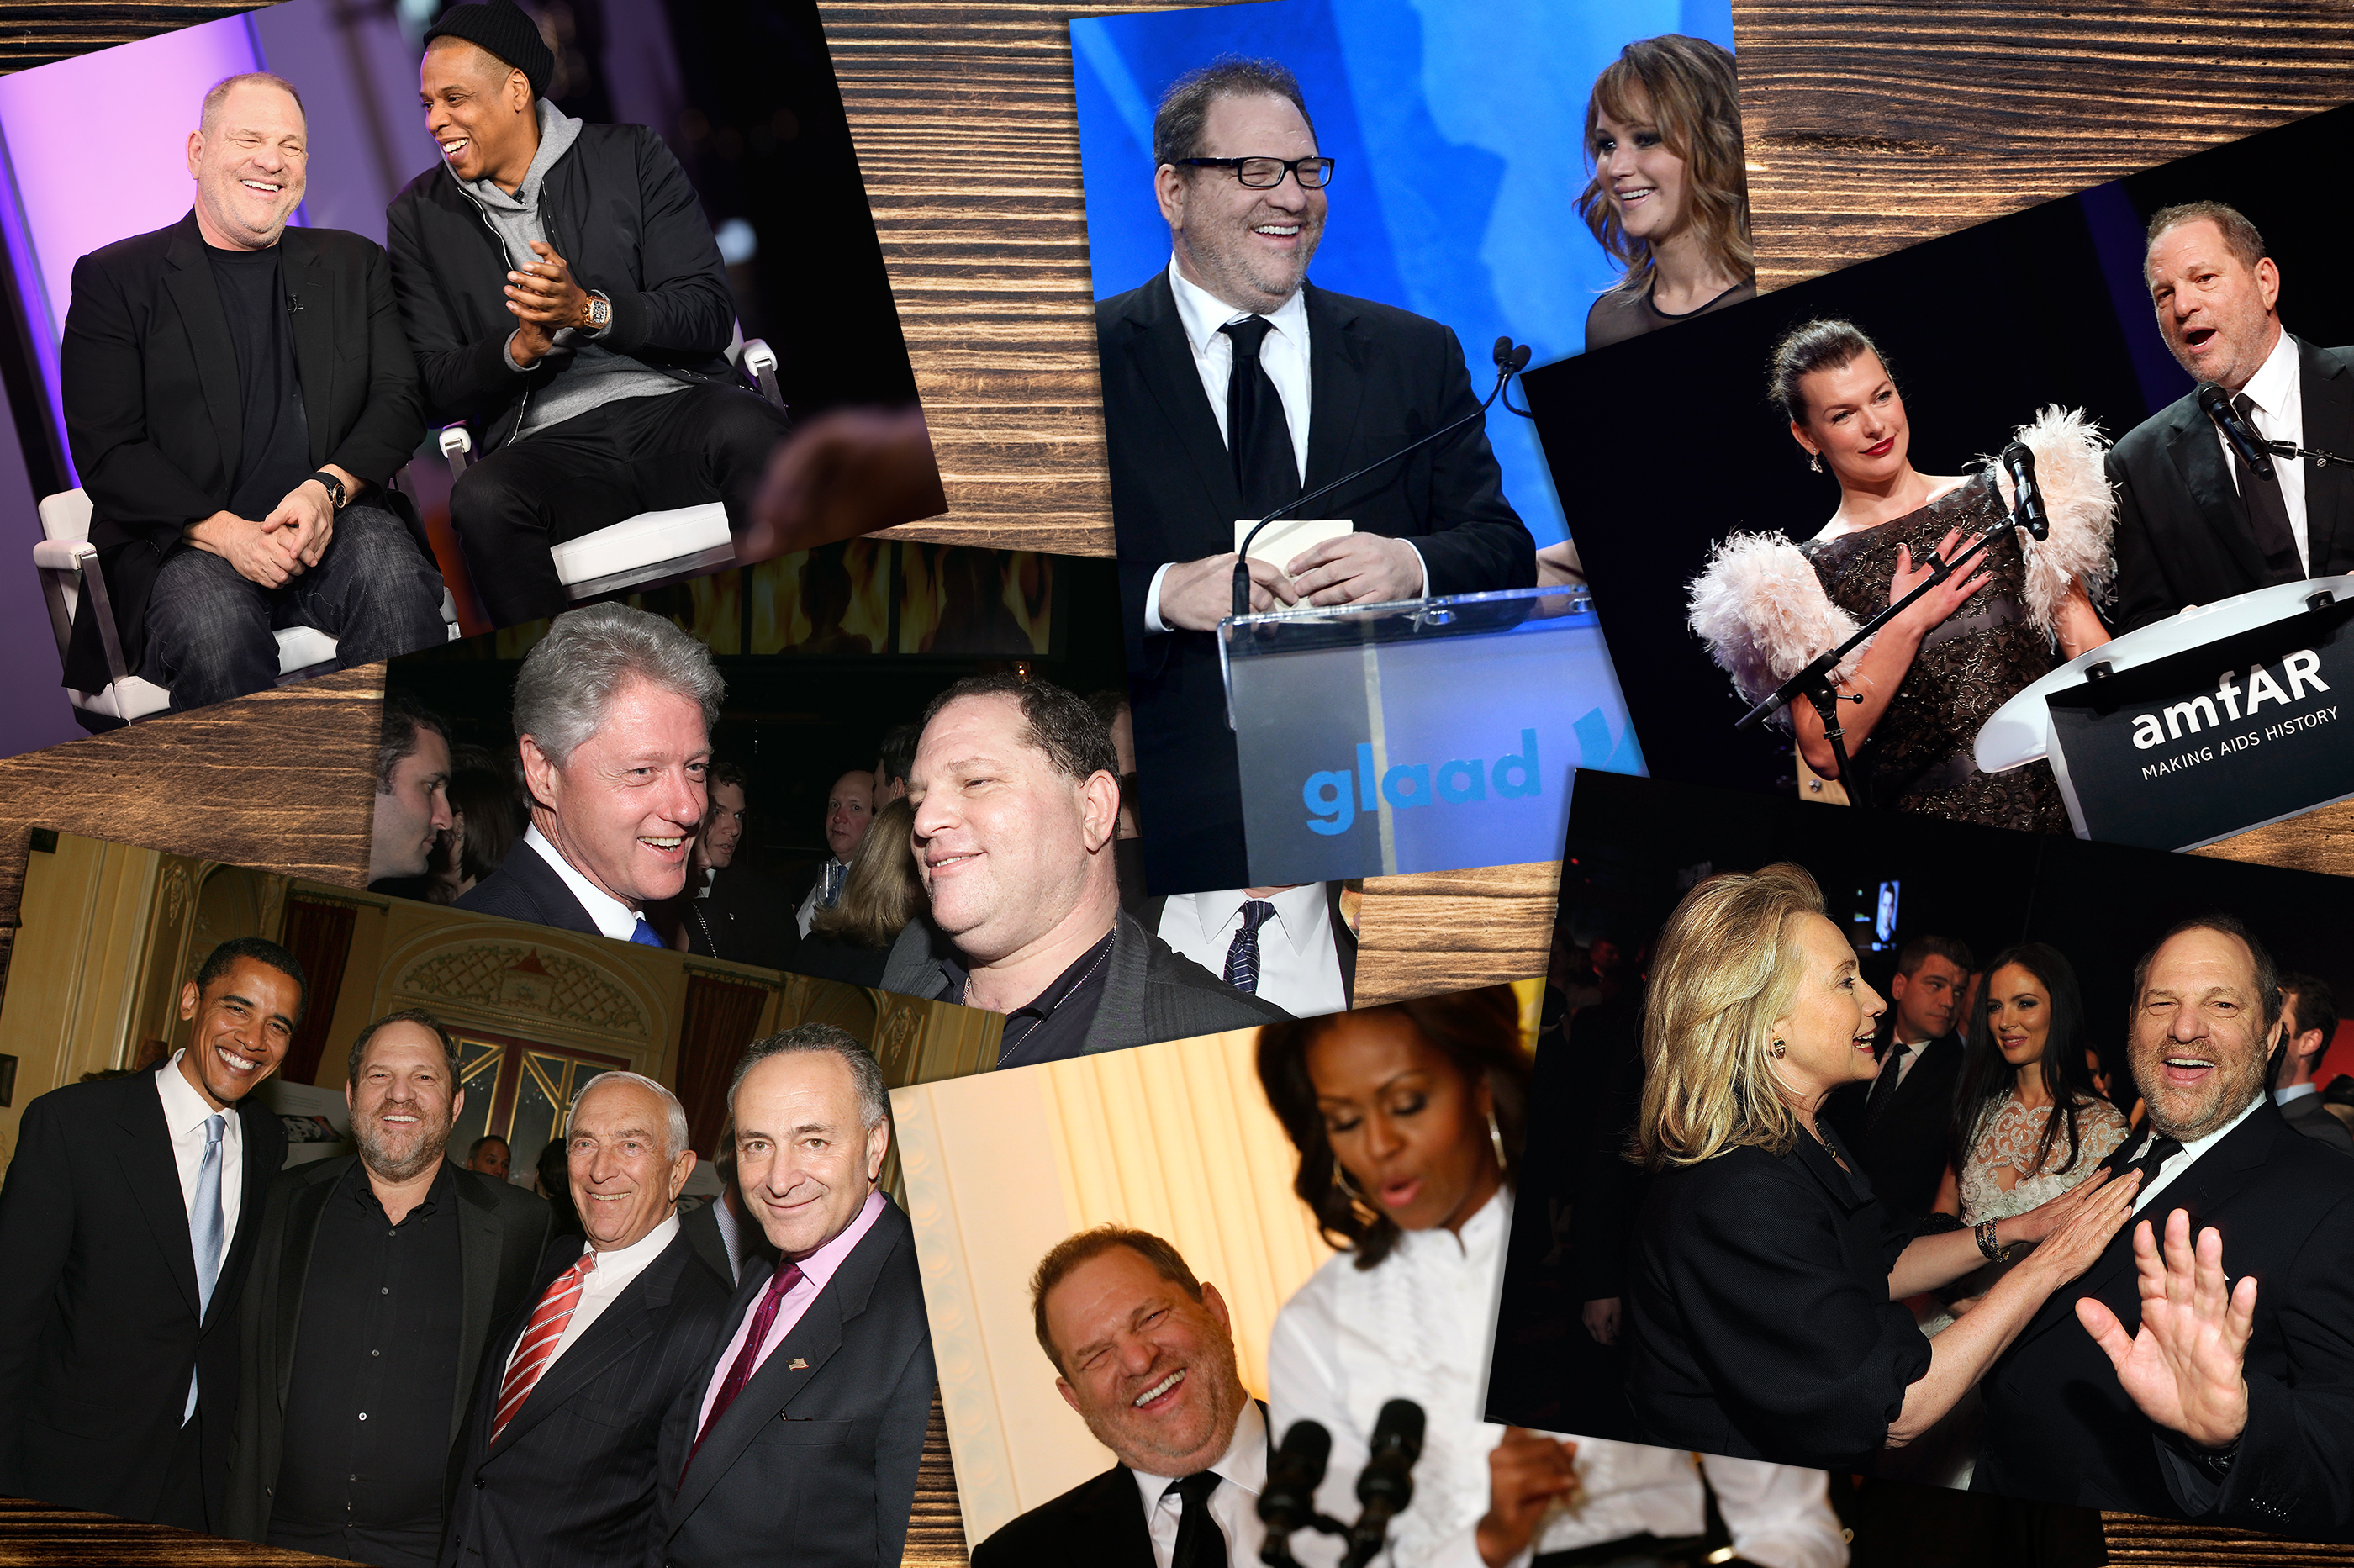 (Clockwise from top left) Harvey Weinstein and Jay Z speak onstage for SpikeTV, 2017; Weinstein and actress Jennifer Lawrence speak onstage during the 24th Annual GLAAD Media Awards; then-Secretary of State Hillary Rodham Clinton and Weinstein attend the TIME 100 Gala in 2012; Weinstein laughs at remarks directed at him by U.S. first lady Michelle Obama as she hosts a workshop at the White House for high school students about careers in film in Washington in 2013; President Bill Clinton and Weinstein at Hillary Clinton's birthday party in 2000; then-Sen. Obama, Weinstein, others attend a private dinner and screening in 2006.